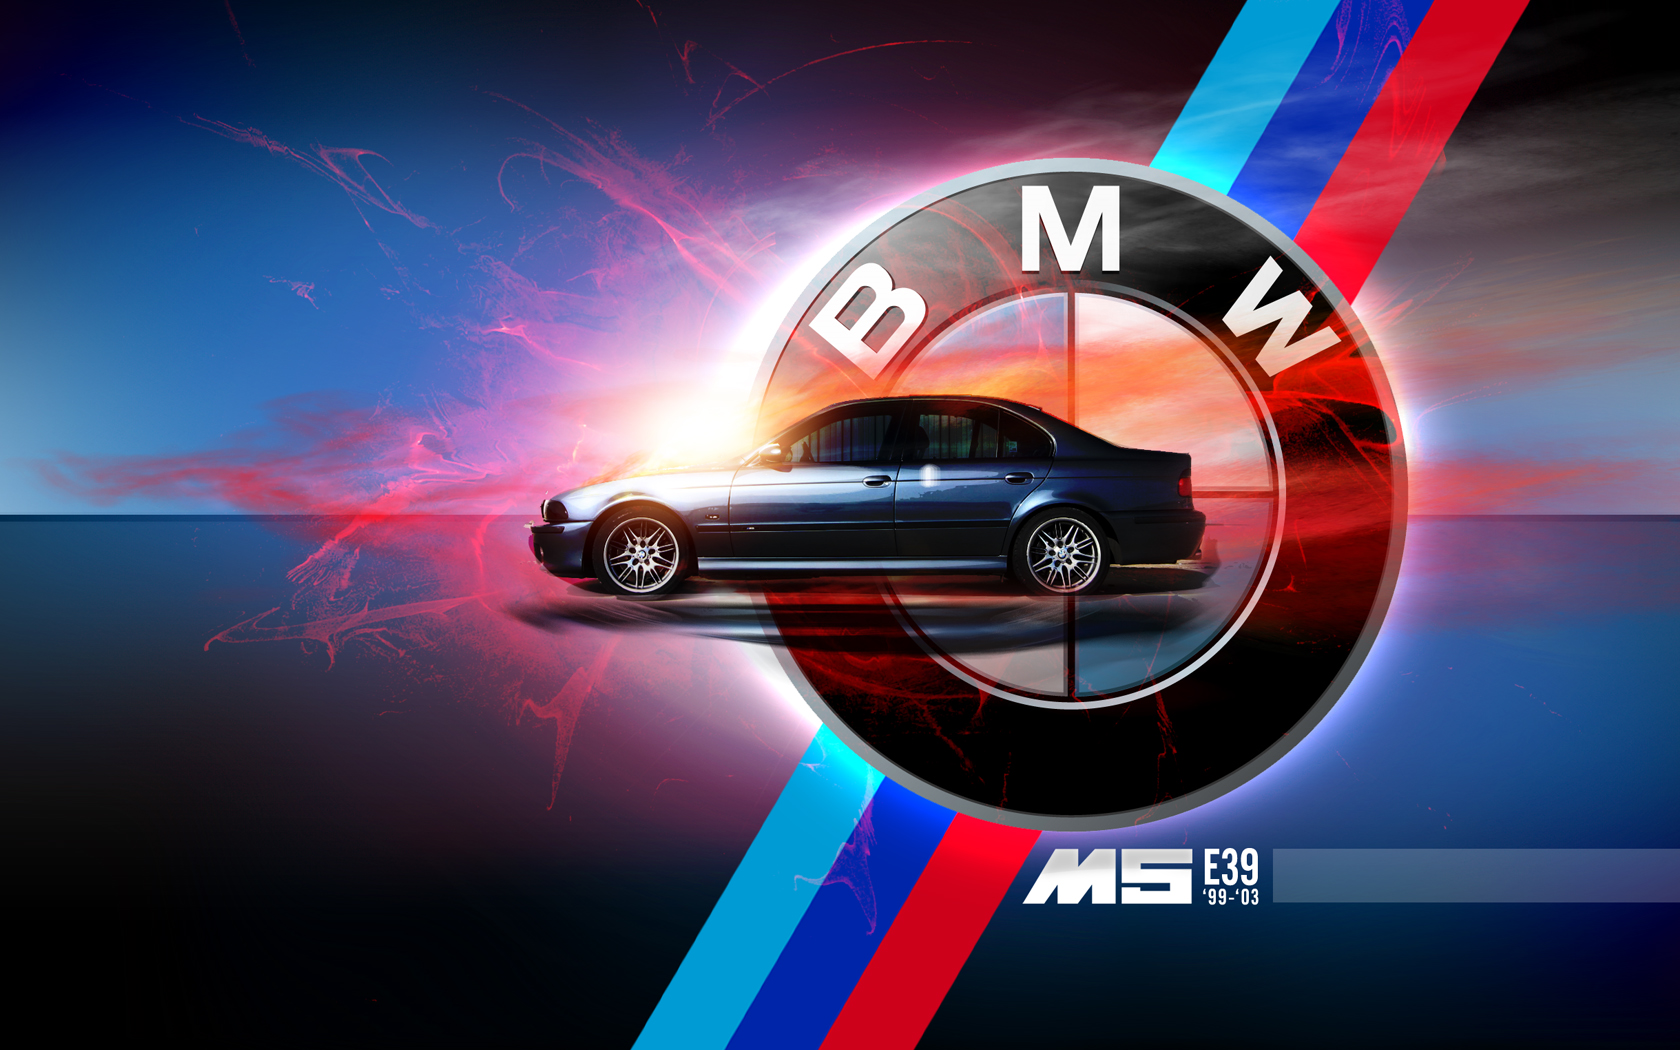 iphone wallpaper bmw m3 images